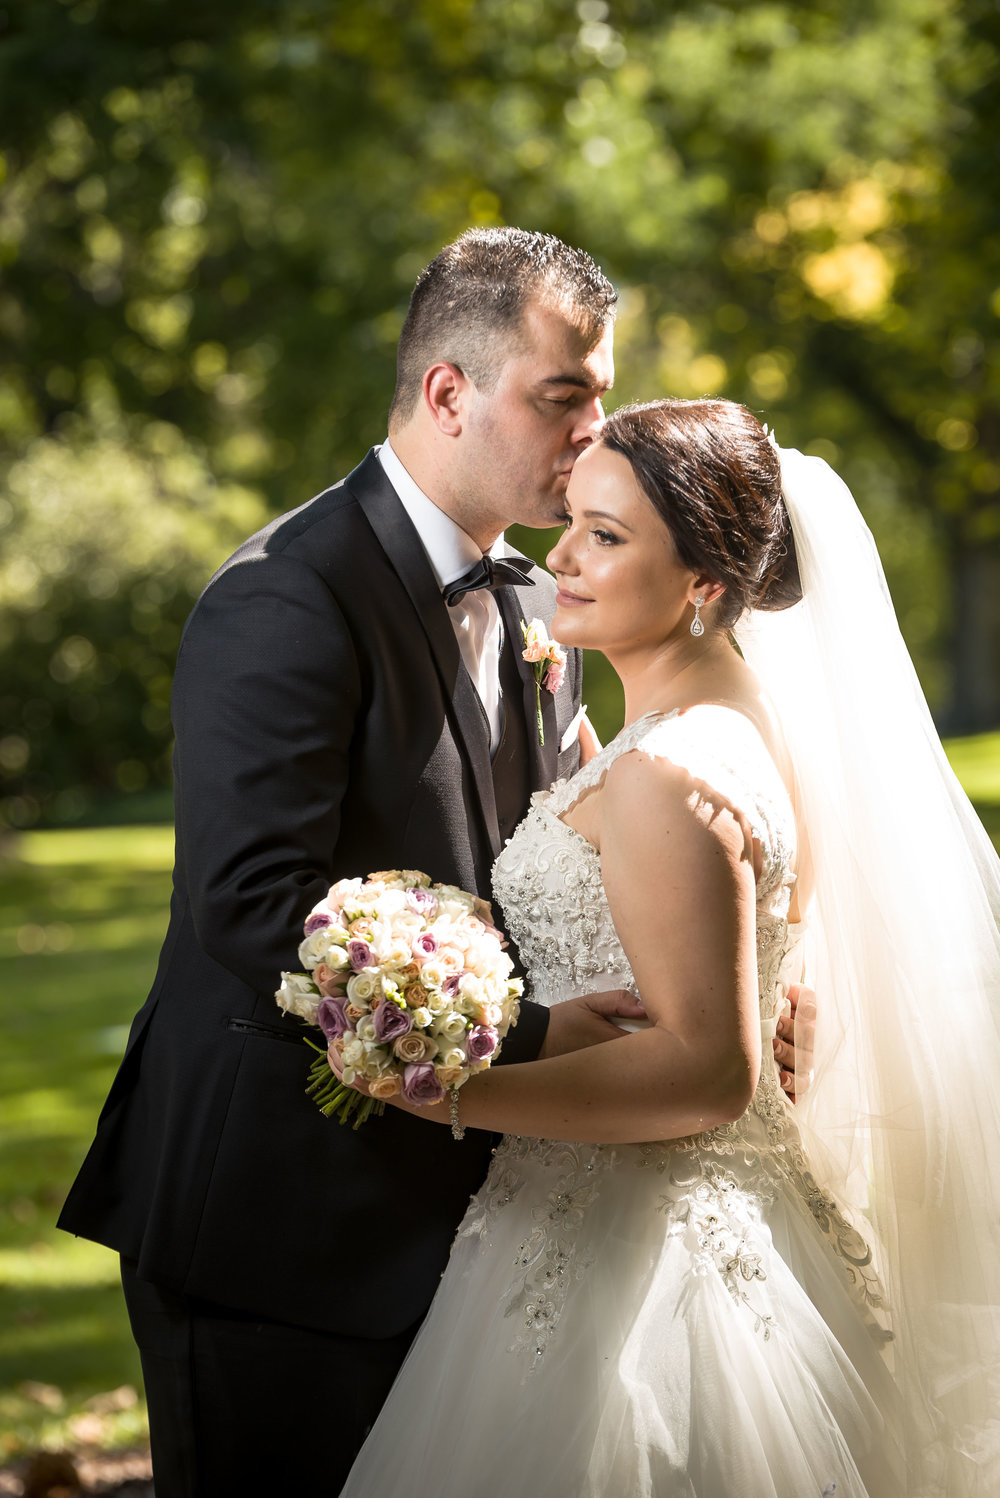 Marina & Marko Gnjidic's Wedding Photography - Photographer: Mar